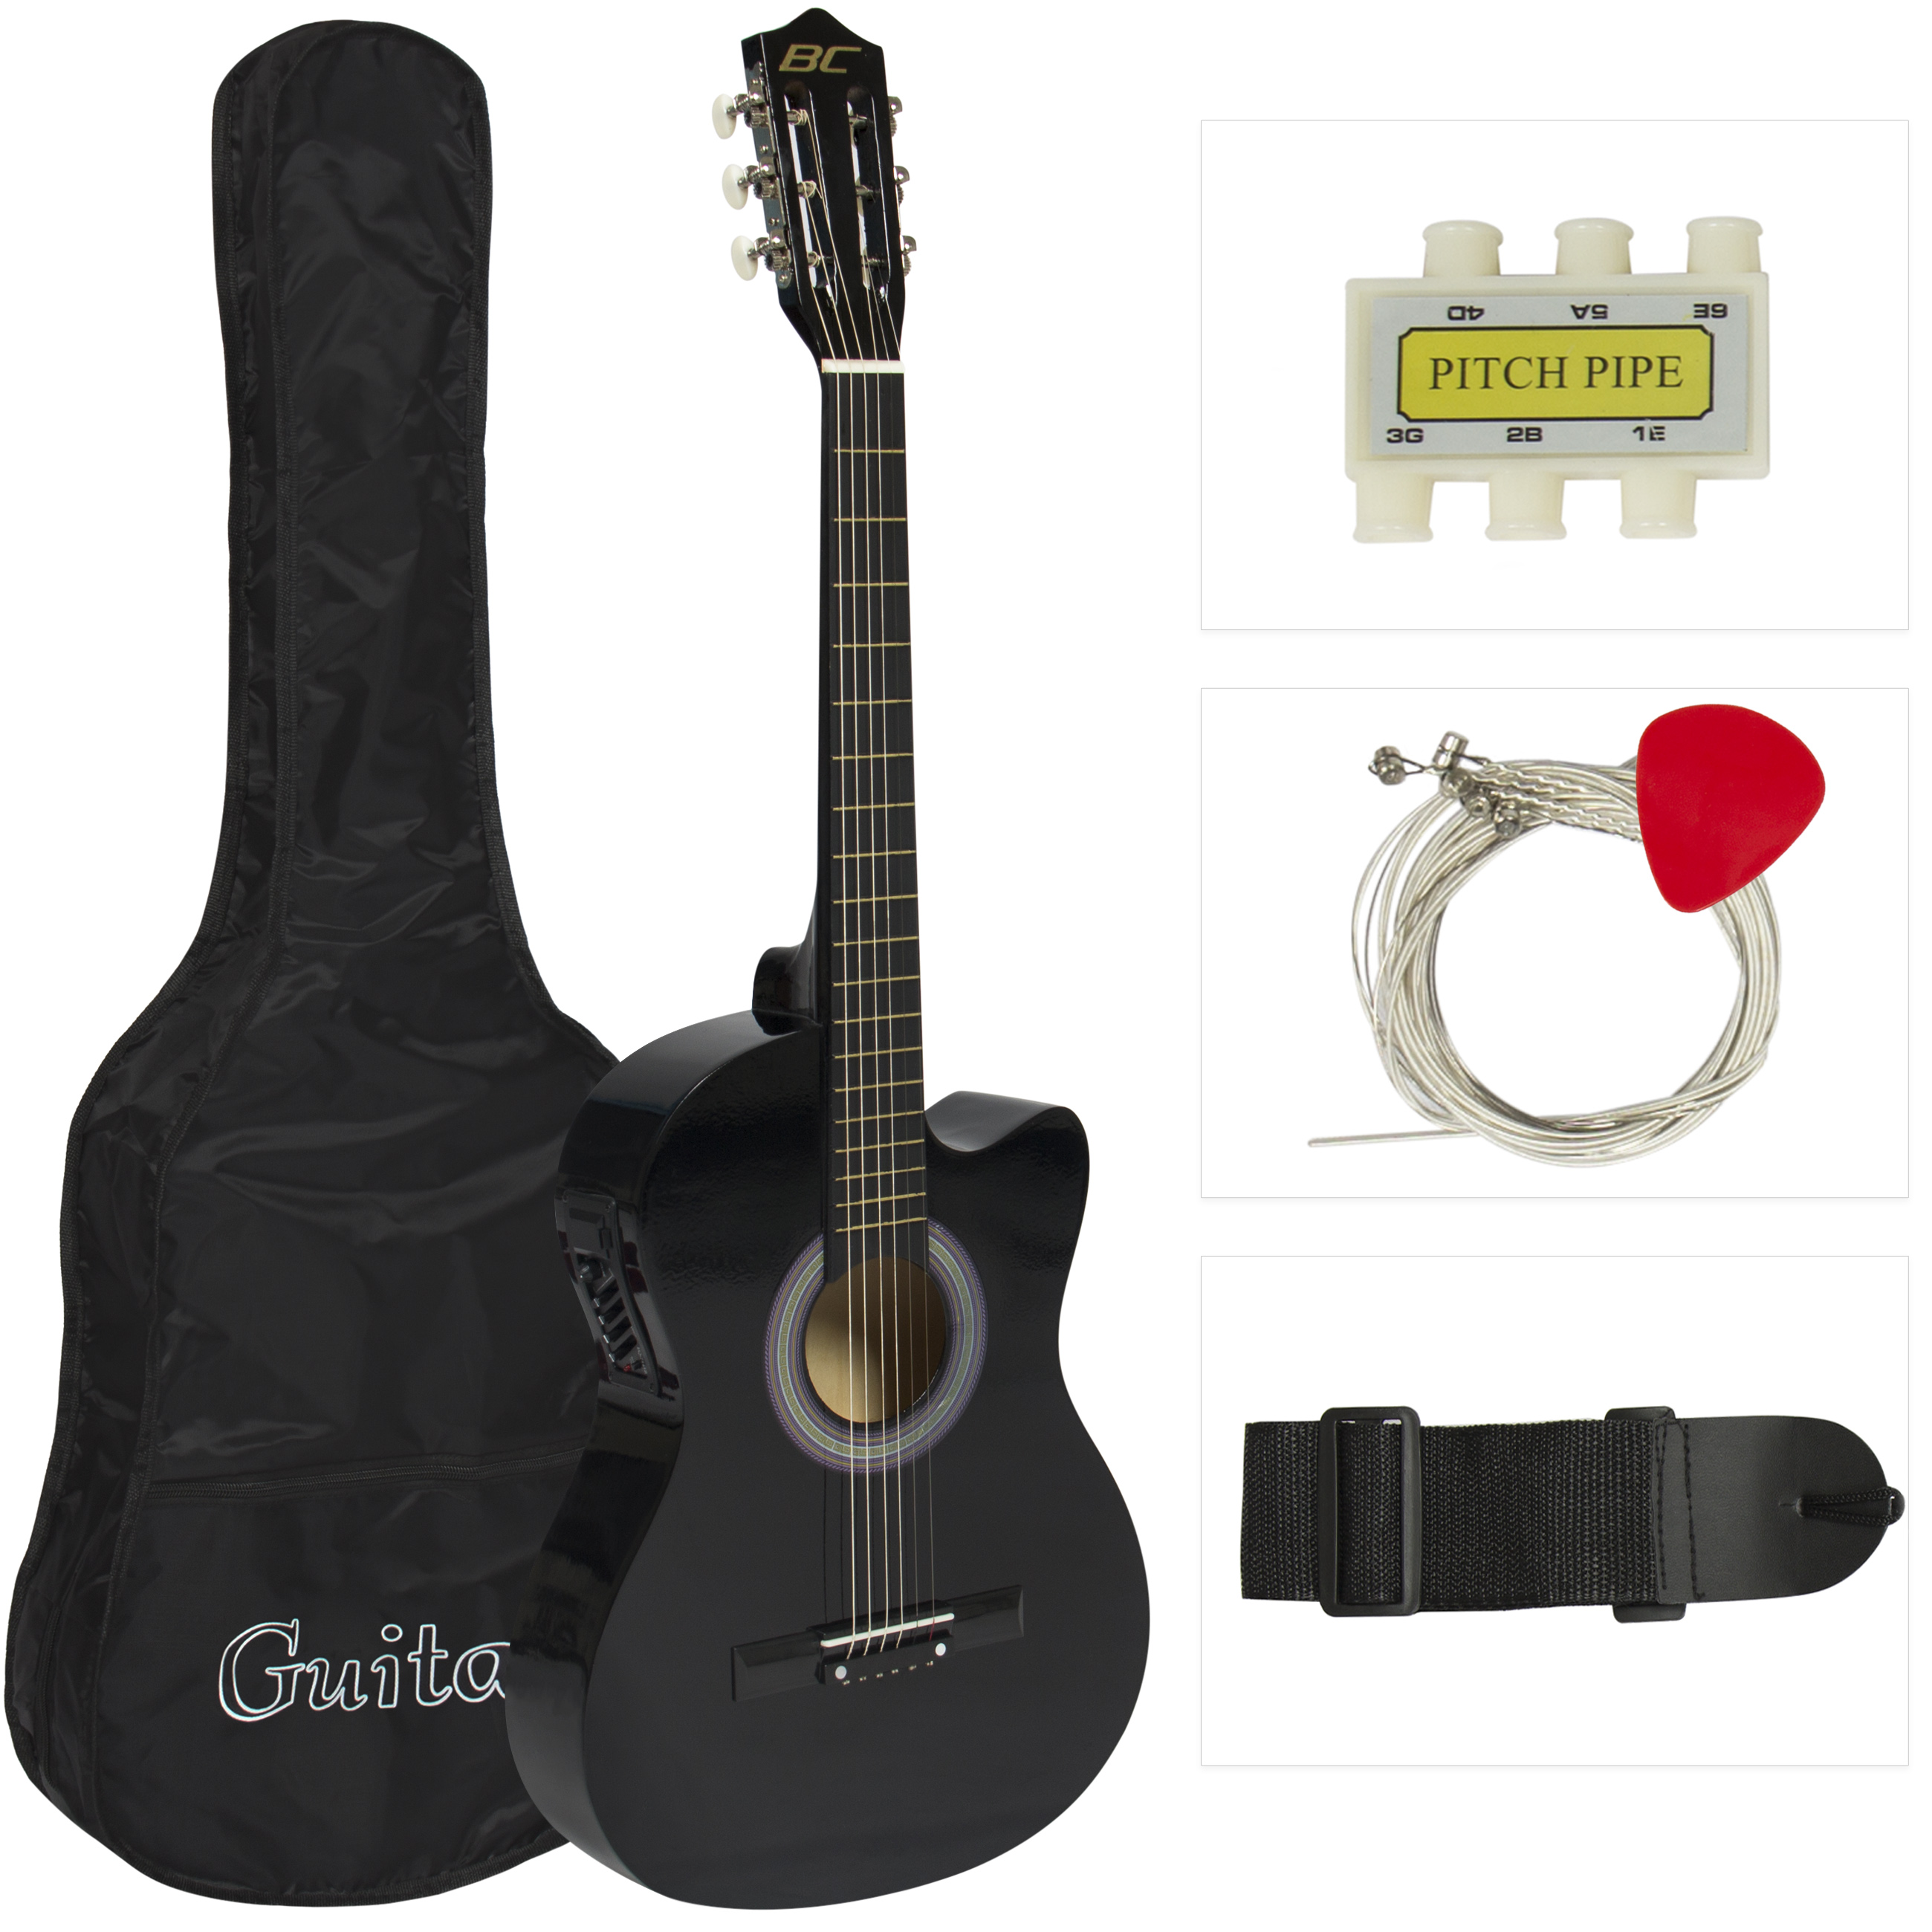 Best Choice Products 38in Beginners Acoustic Cutaway Guitar w/ Case, Extra Strings, Strap, Tuner, and Pick - Black